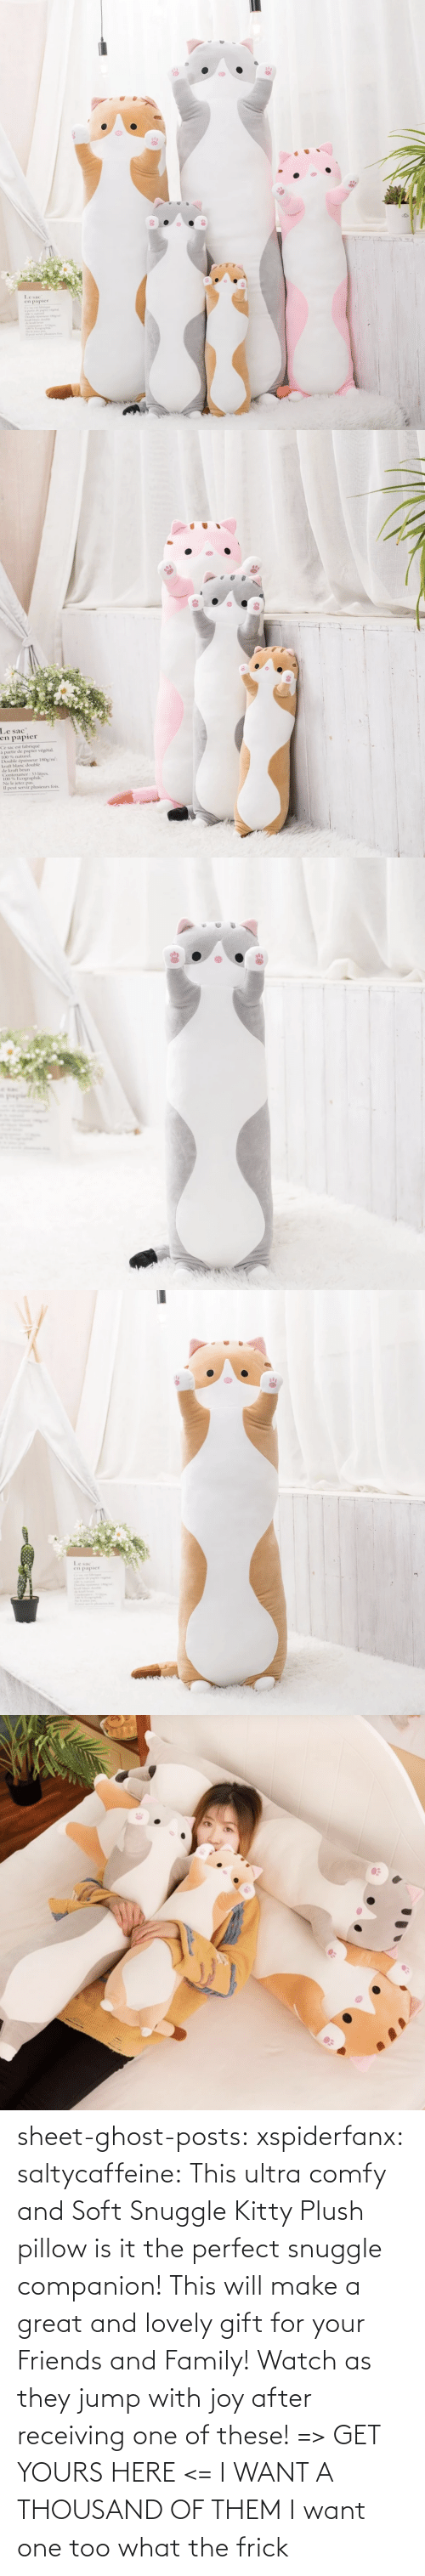 Ghost: sheet-ghost-posts: xspiderfanx:  saltycaffeine:  This ultra comfy and Soft Snuggle Kitty Plush pillow is it the perfect snuggle companion! This will make a great and lovely gift for your Friends and Family! Watch as they jump with joy after receiving one of these! => GET YOURS HERE <=    I WANT A THOUSAND OF THEM  I want one too what the frick